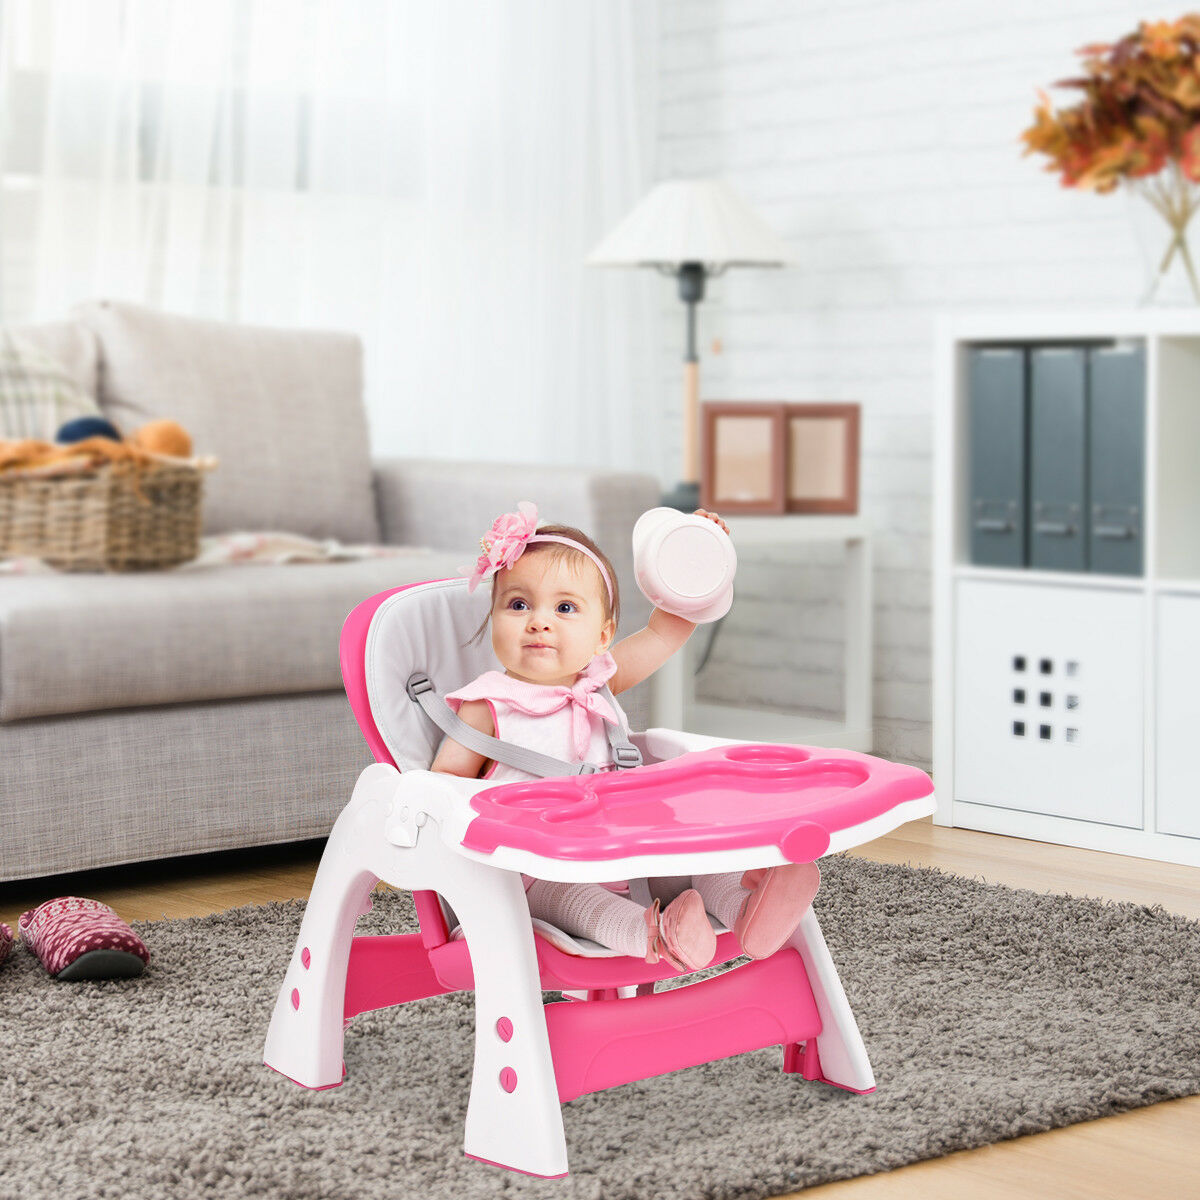 3 in 1 Baby High Chair Convertible Play Table Seat Booster Toddler Feeding Tray - image 8 de 10